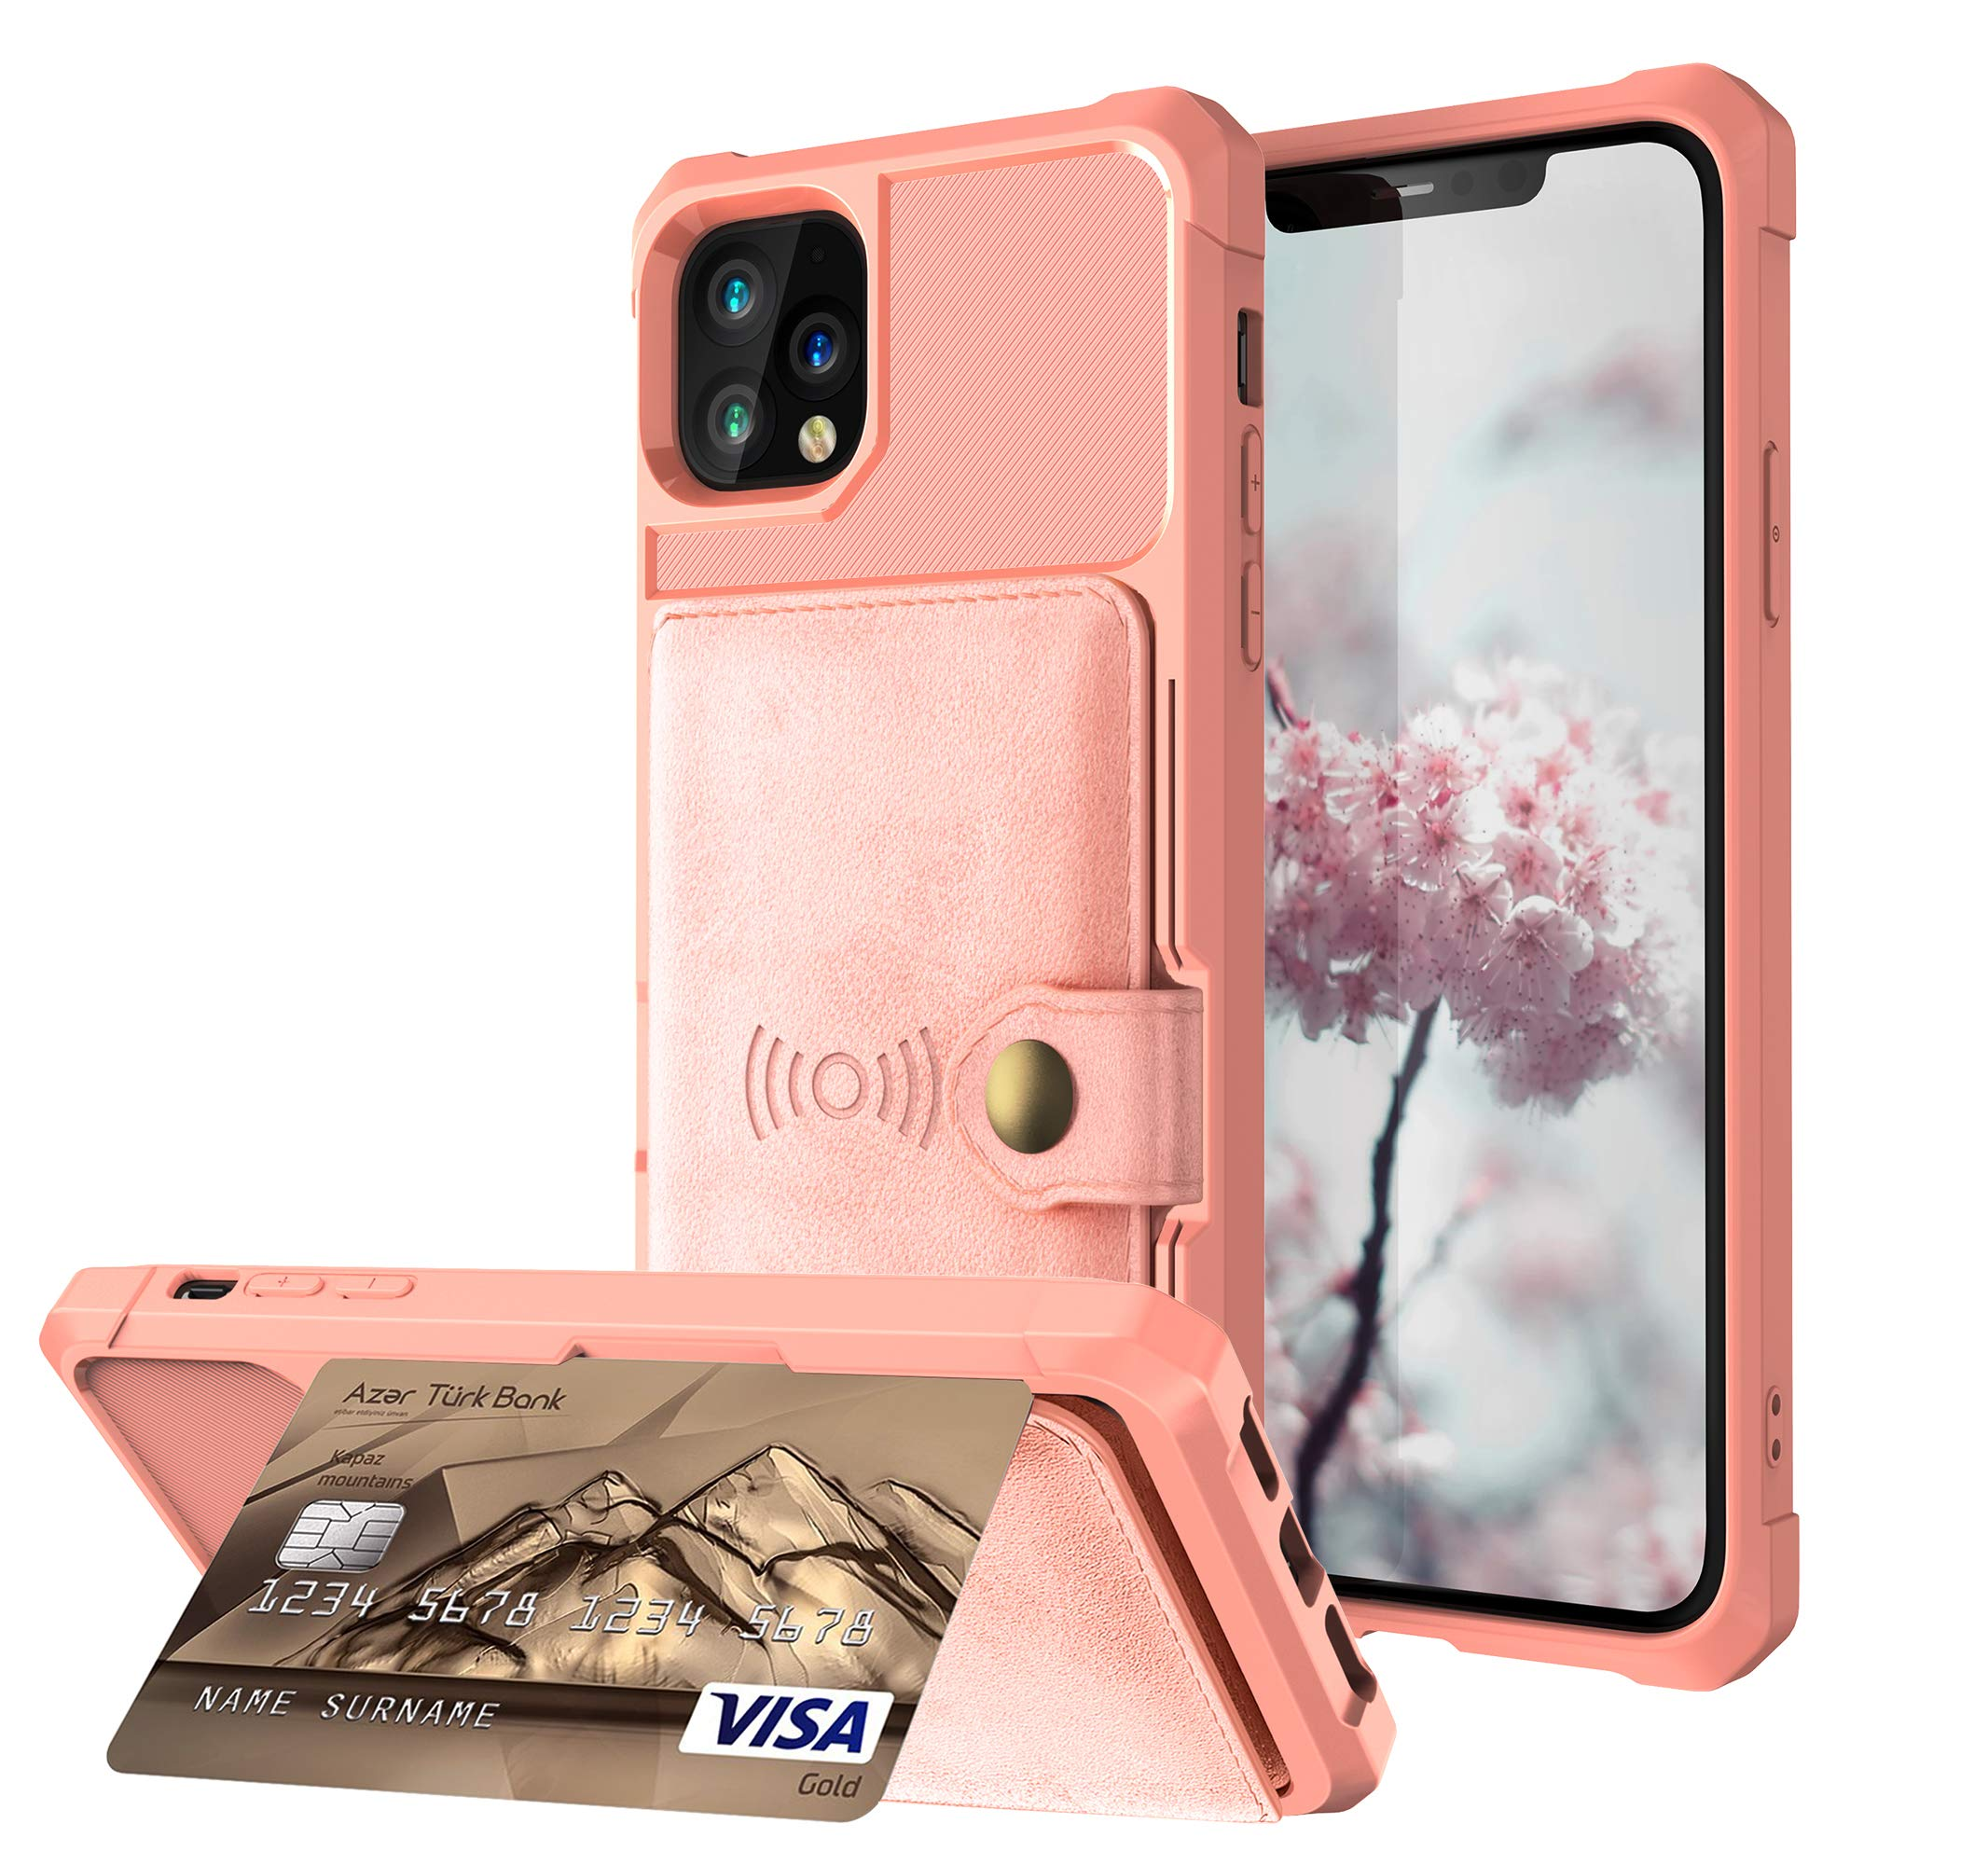 DAMONDY for iPhone 11 Pro Max Case,Wallet Purse Card Holders Design Cover Soft Shockproof Bumper Flip Leather Kickstand Drop Protection Magnetic Case for iPhone 11 Pro Max 6.5 inch-Rose Gold by DAMONDY